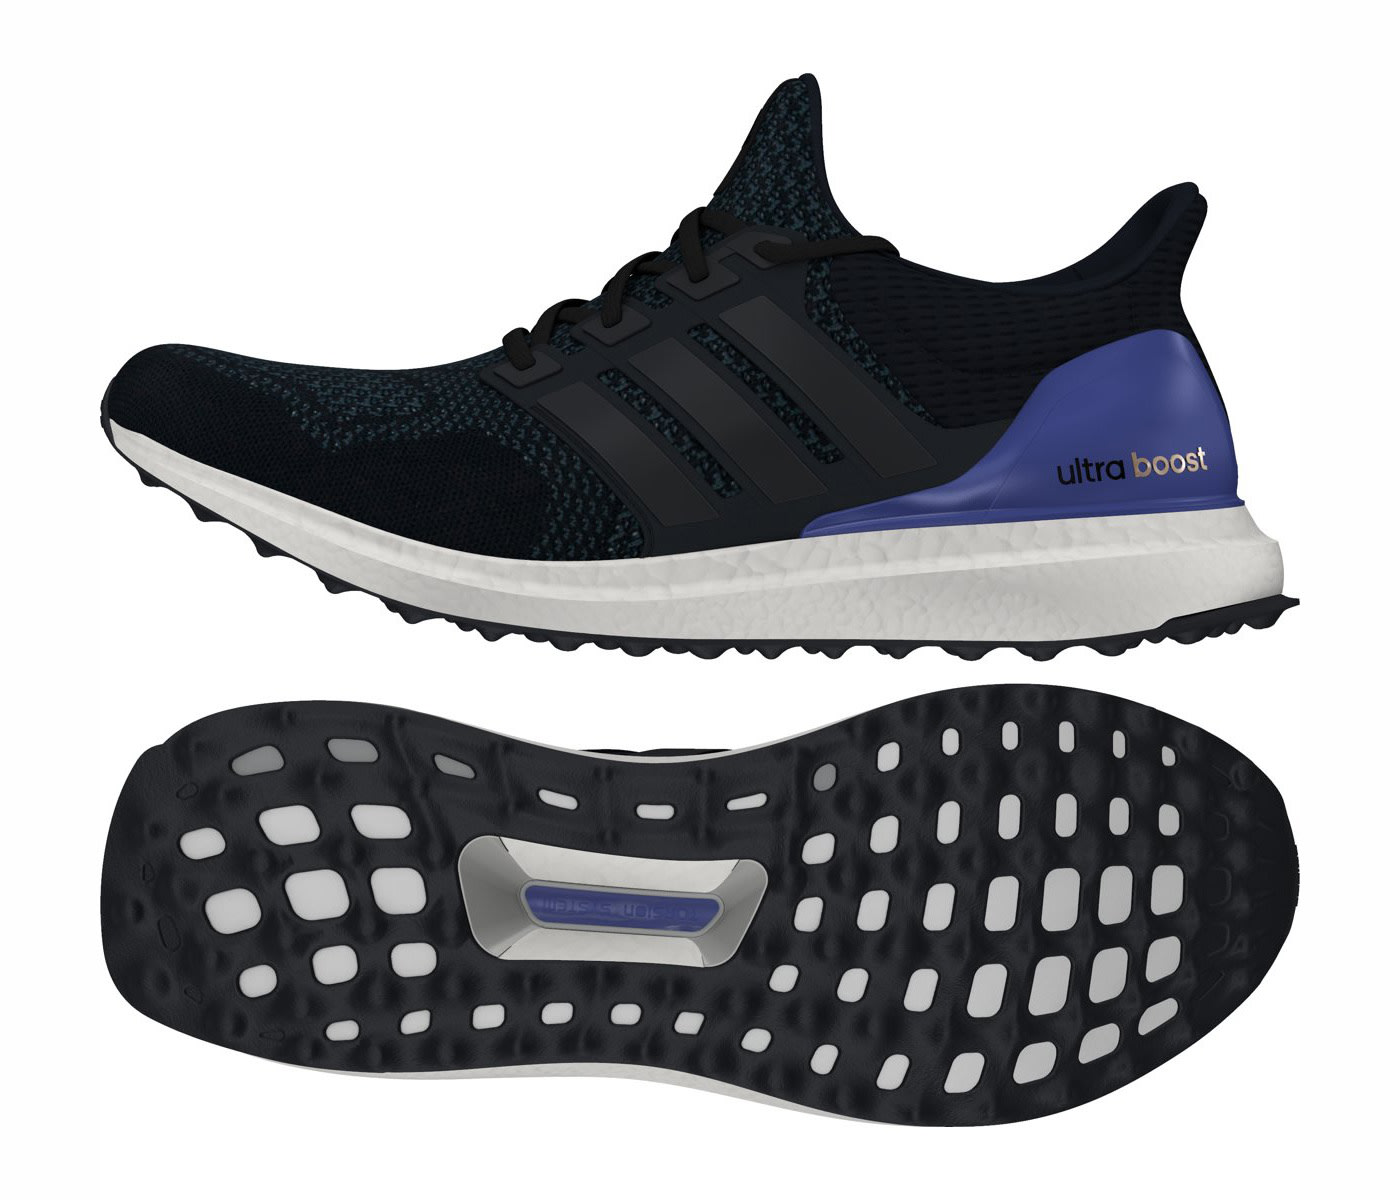 coupon code for adidas ultra boost 5.0 13cca 8a392